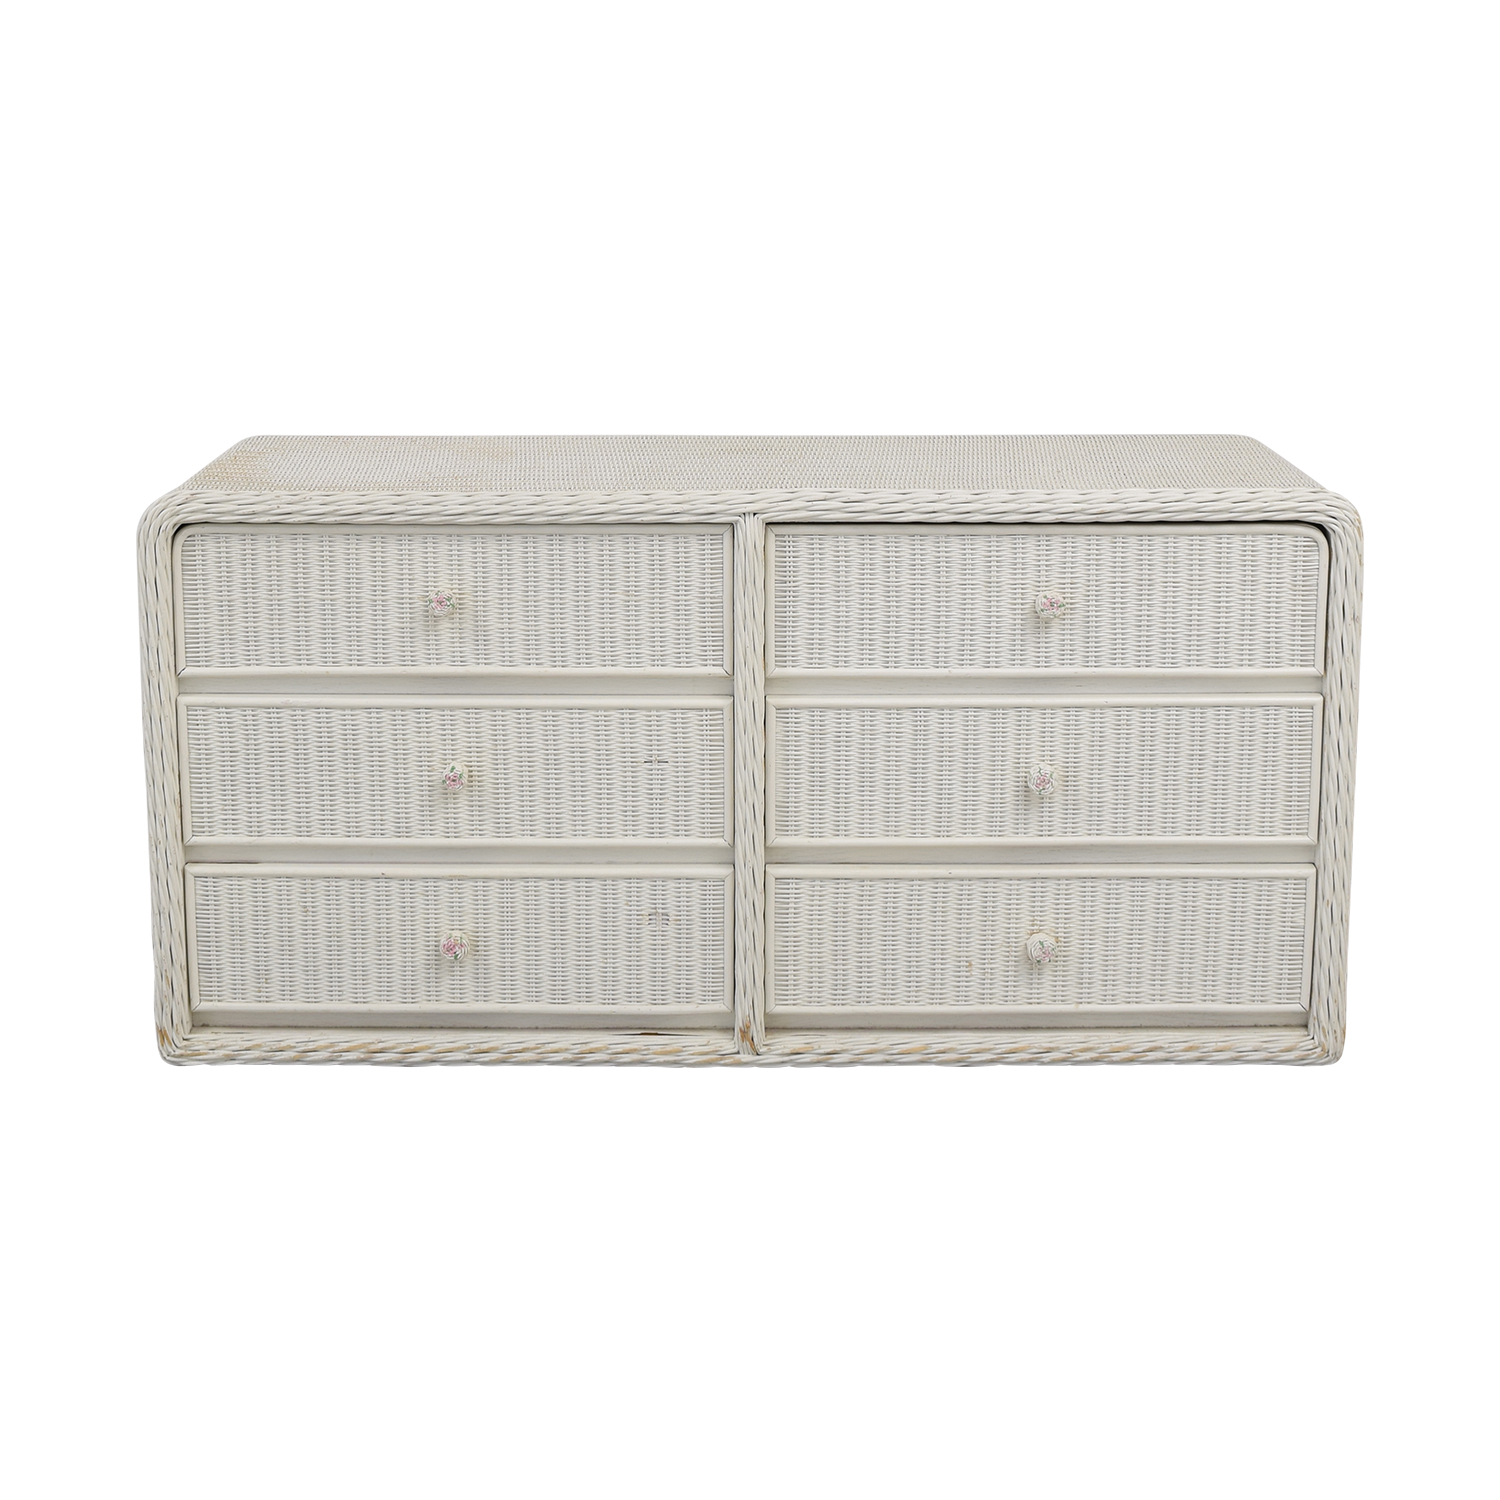 White Wicker Chest of Drawers on sale